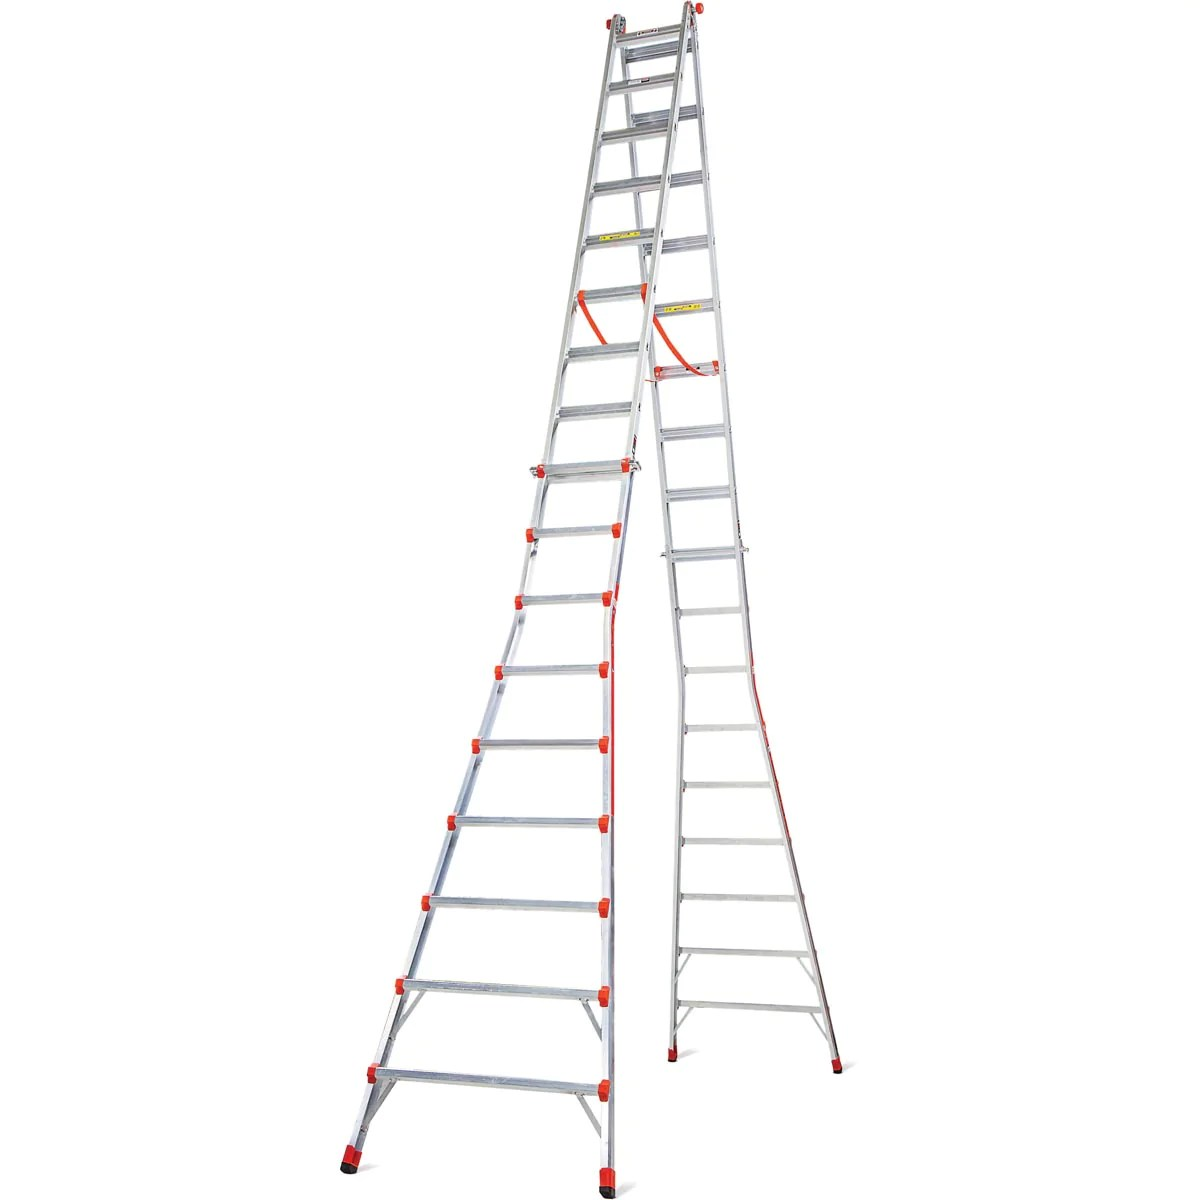 20' Ladder Home Depot Little Giant Skyscraper Ladder Type 1a Skyscraper Mxz